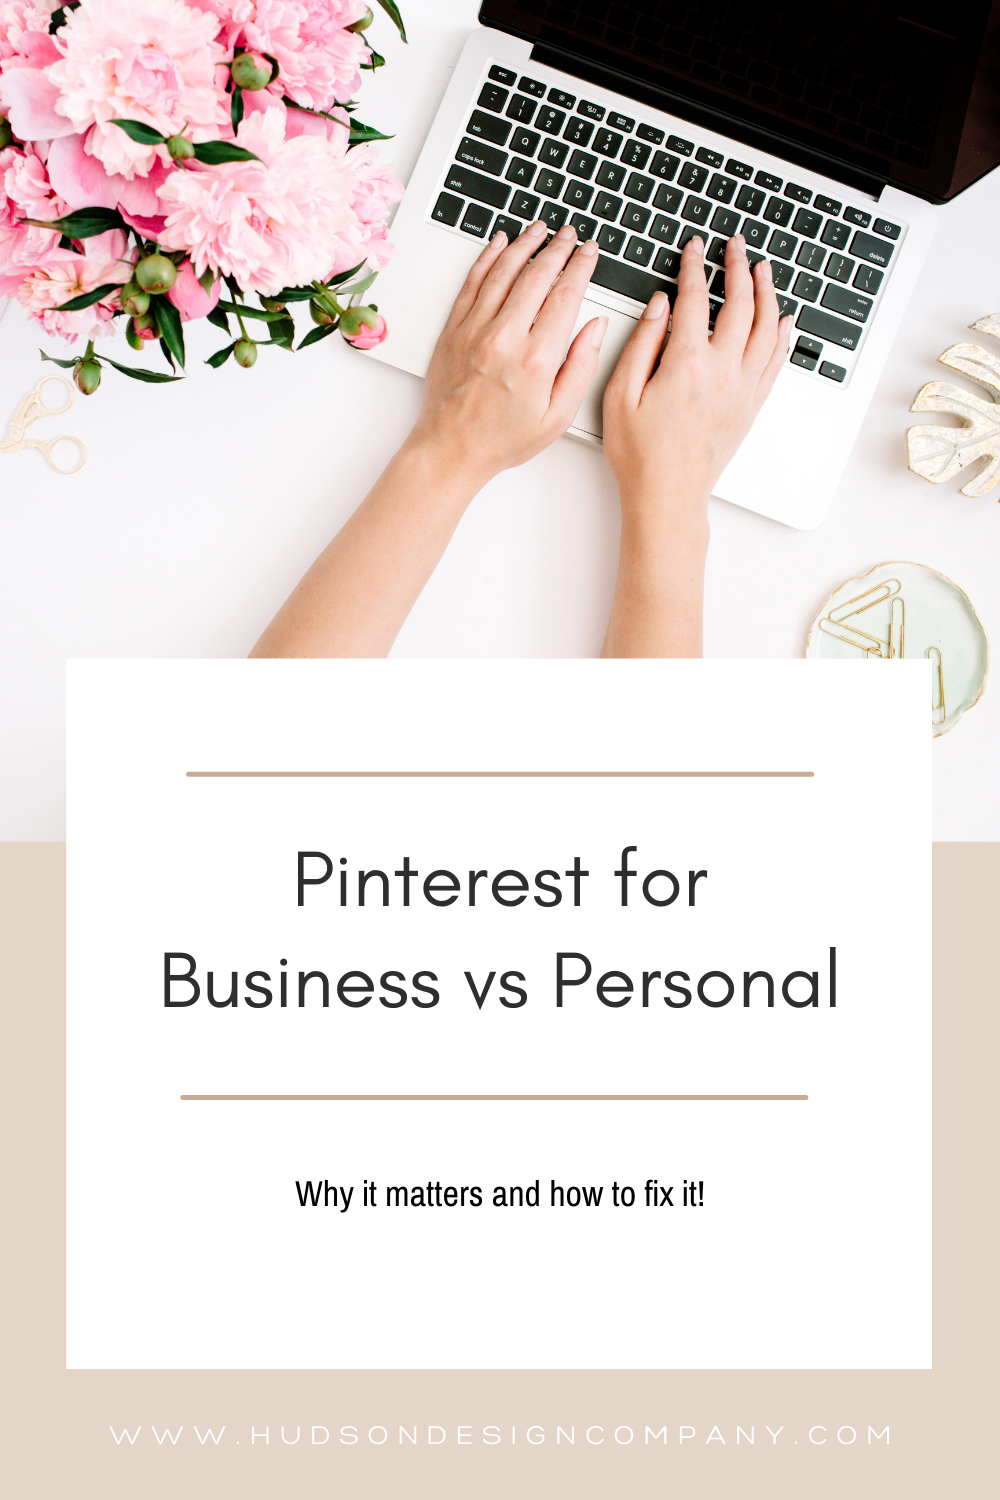 Modern Pinterest Pin Graphic Template 1 - Pinterest Business Account vs Personal